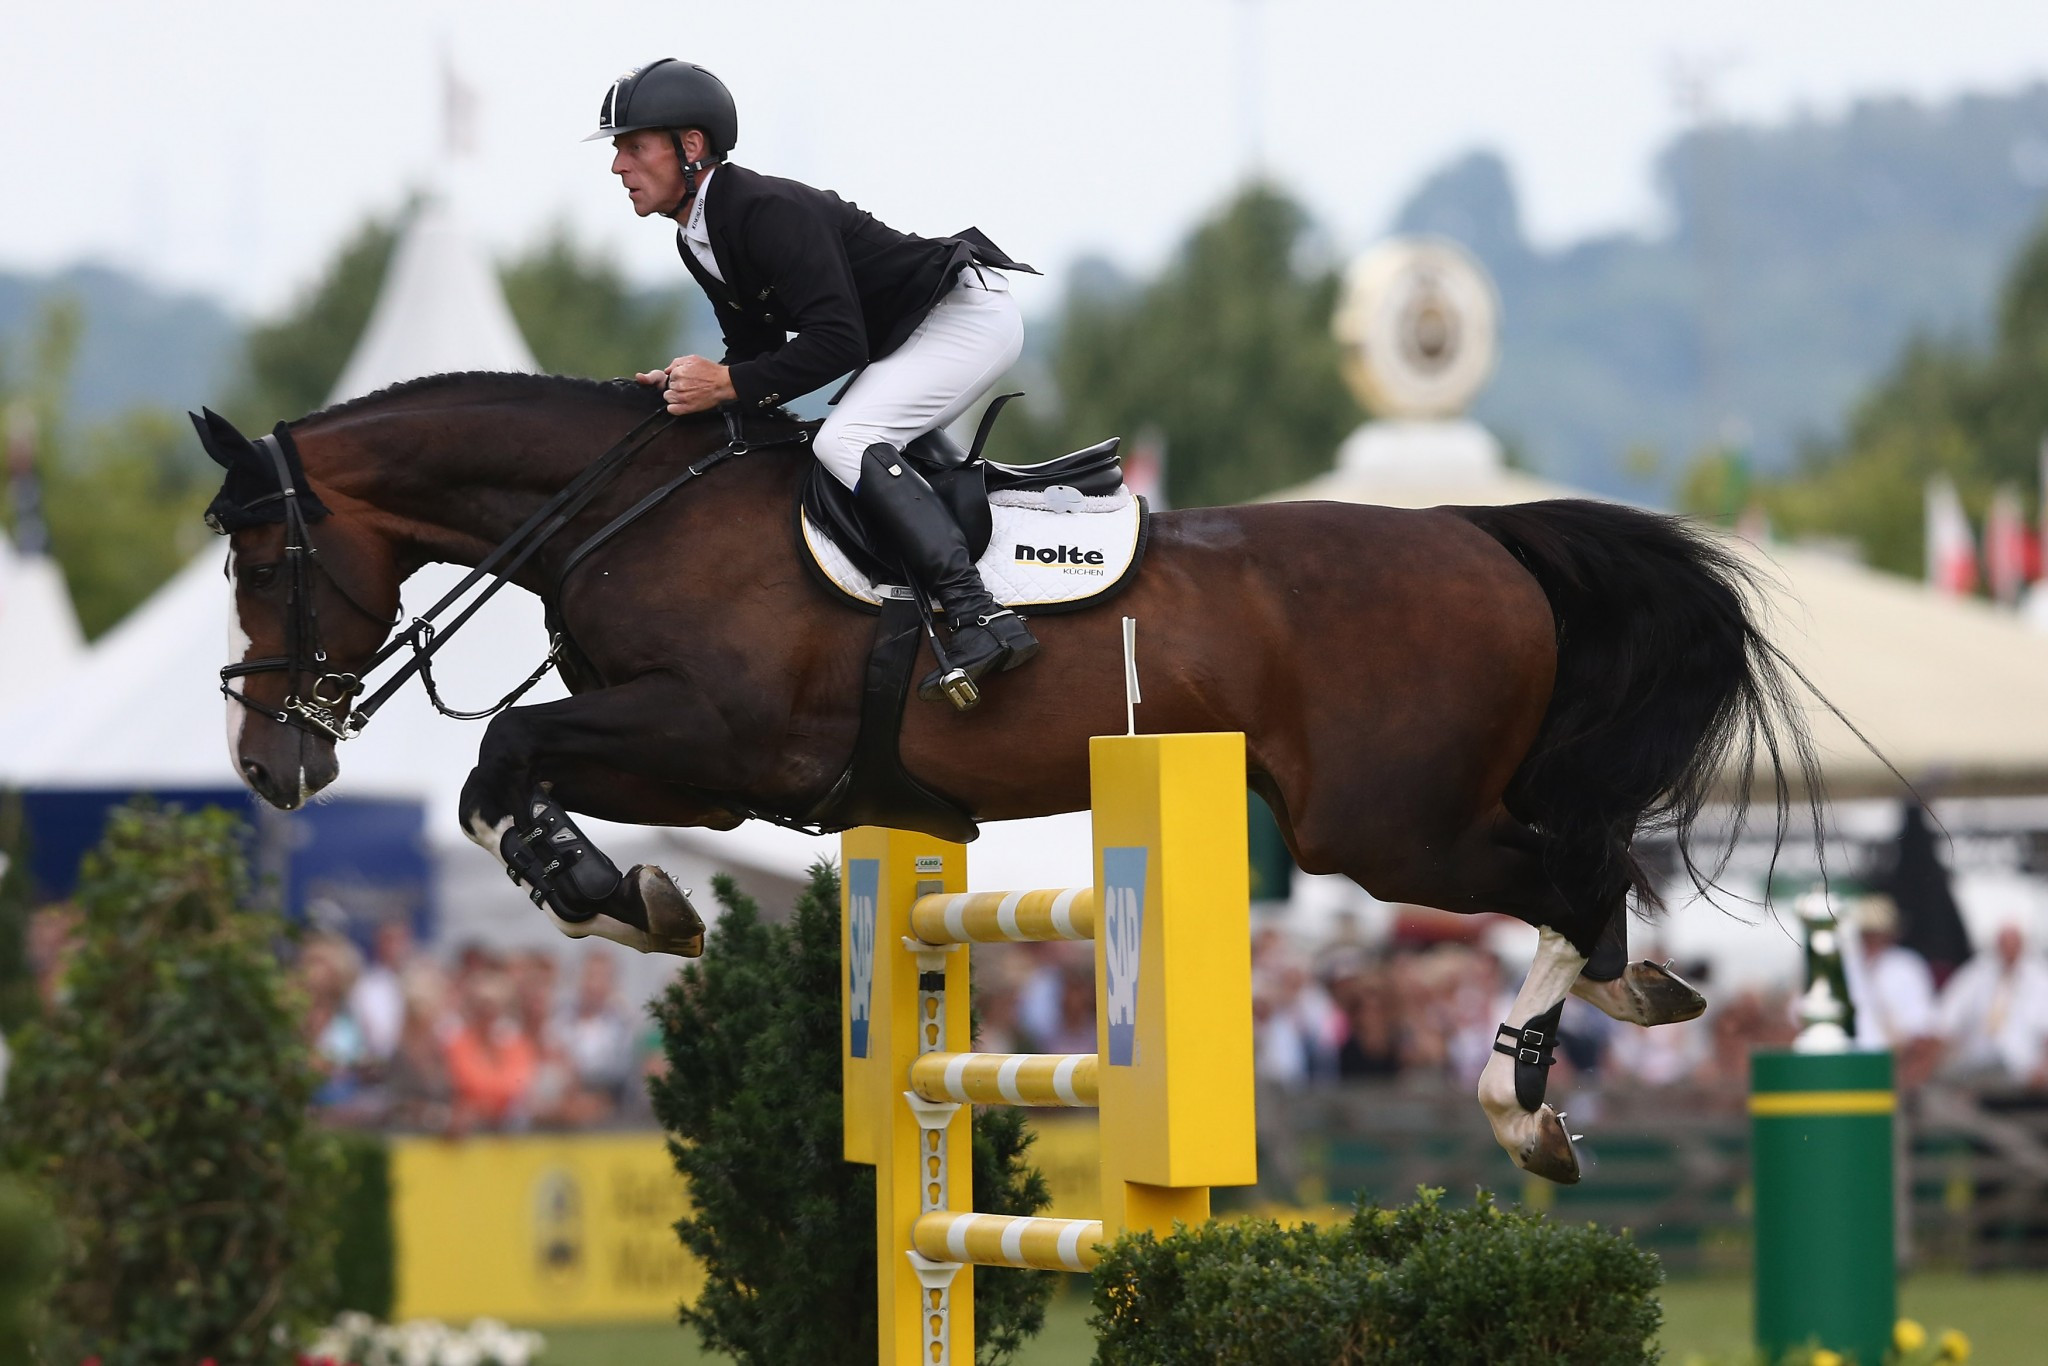 Ehning aiming for record fourth FEI World Cup Jumping title in Las Vegas